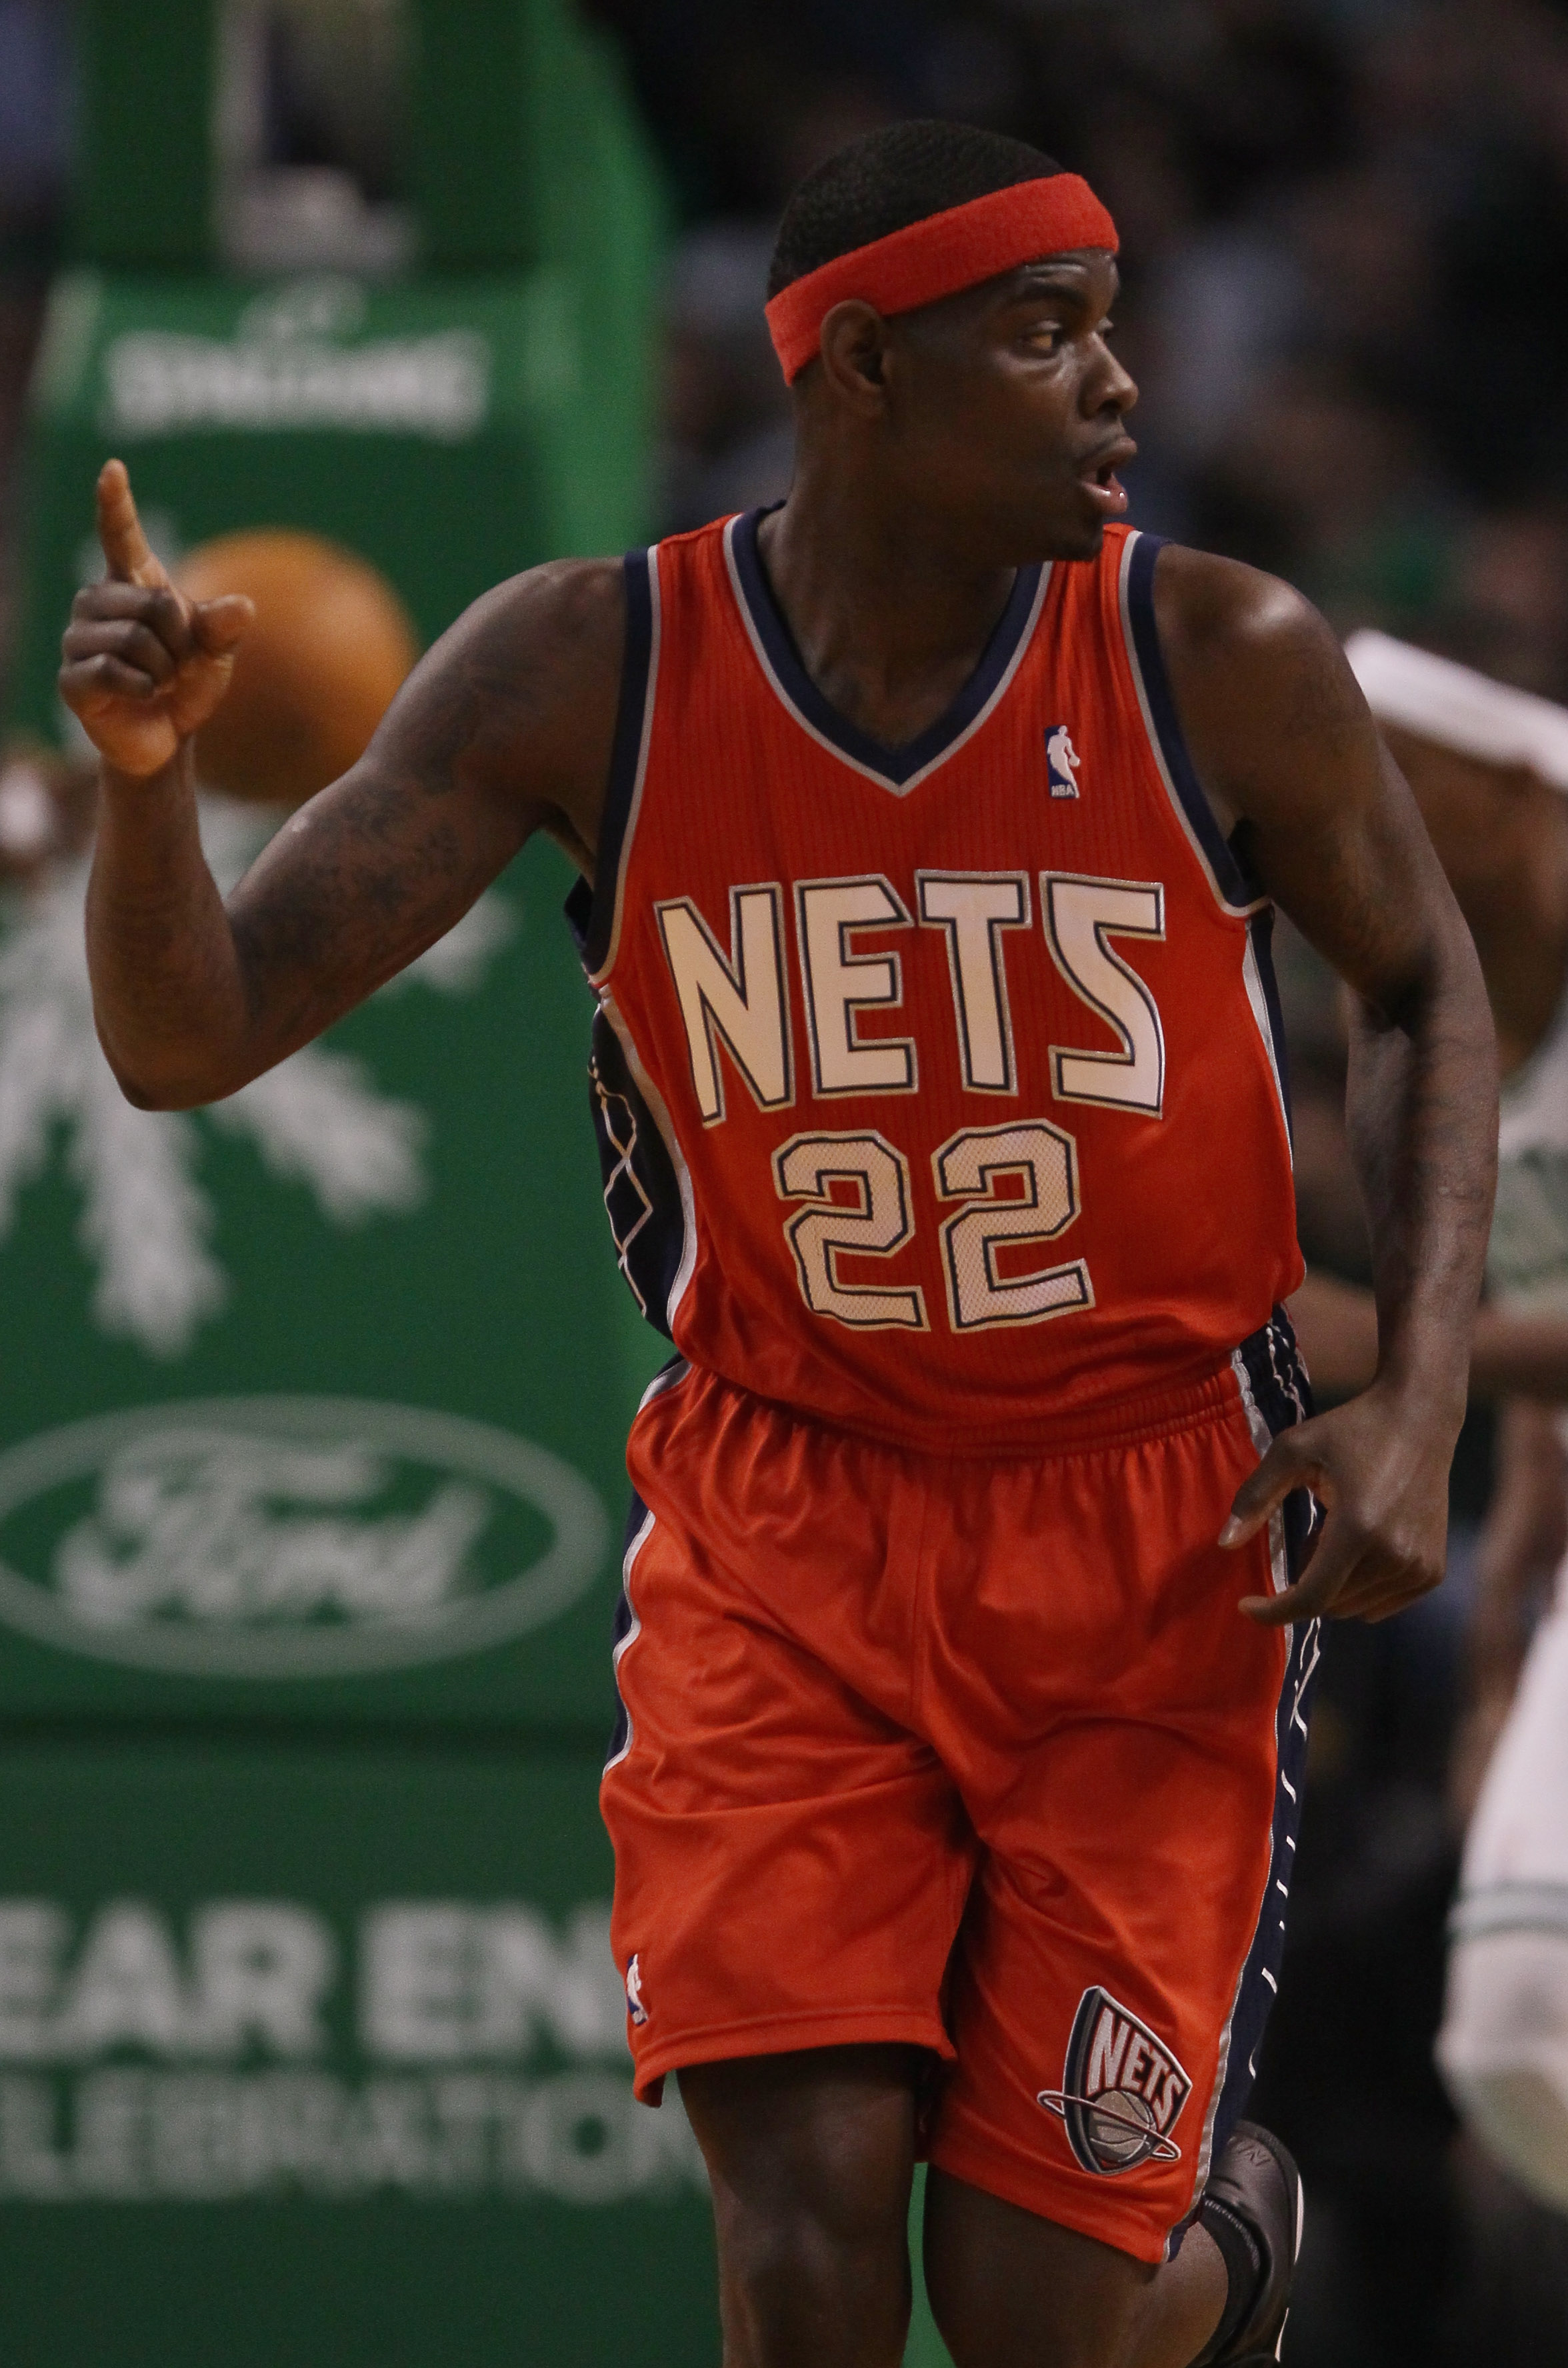 BOSTON - NOVEMBER 24:  Anthony Morrow #22 of the New Jersey Nets celebrates his basket in the first quarter against the Boston Celtics on November 24, 2010 at the TD Garden in Boston, Massachusetts. NOTE TO USER: User expressly acknowledges and agrees tha